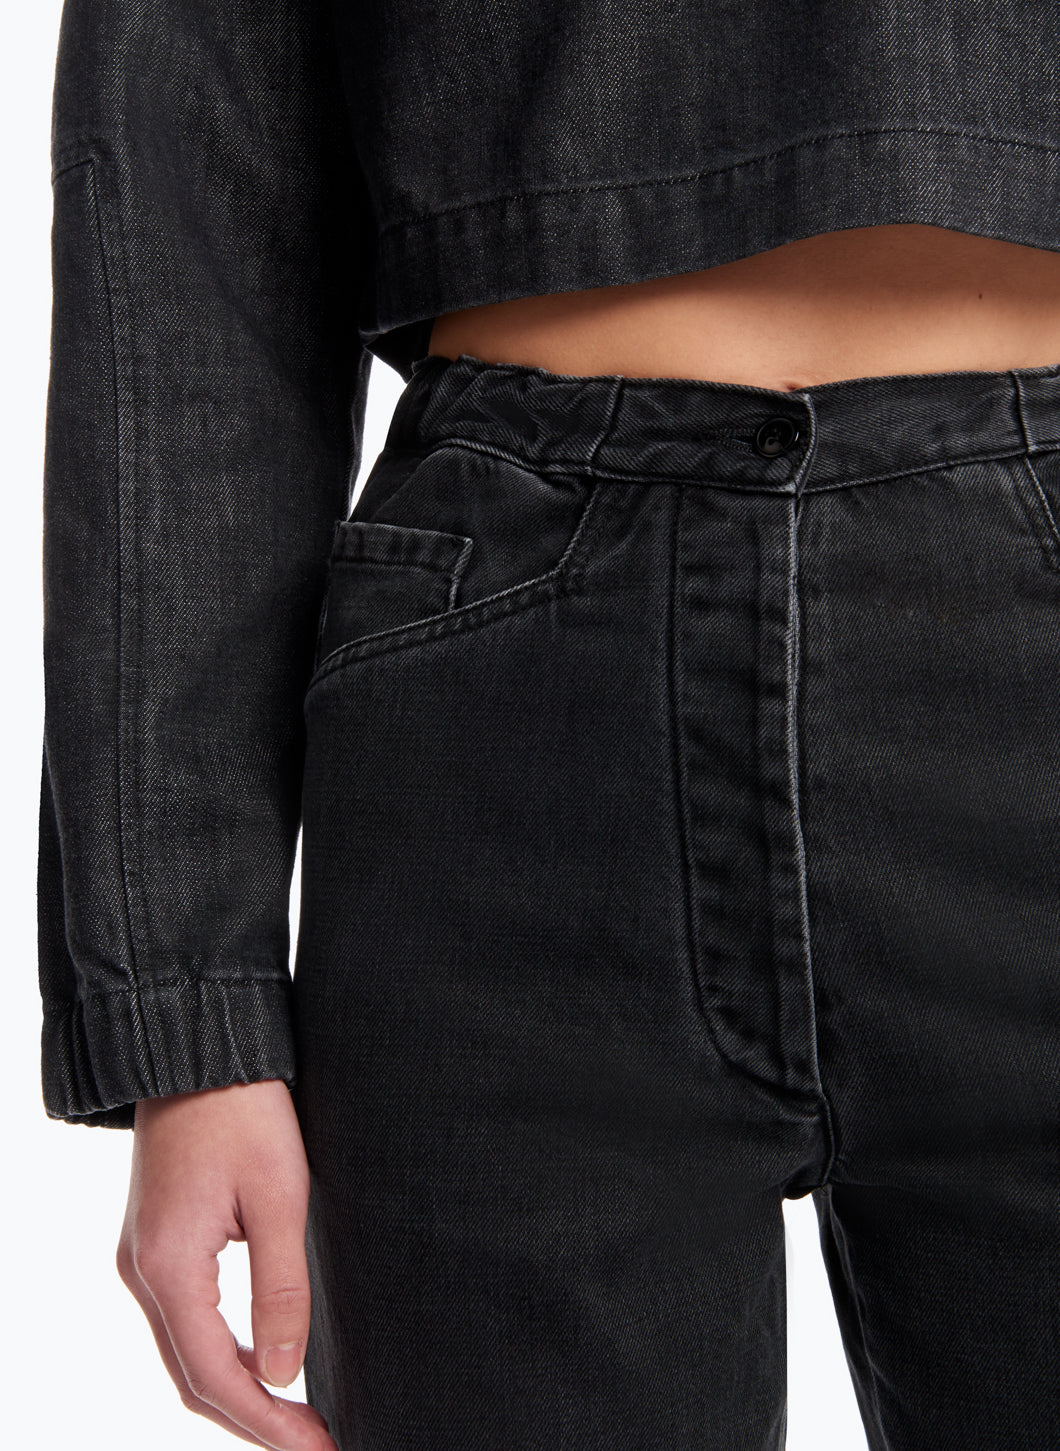 5-Pocket Pants in Black Denim